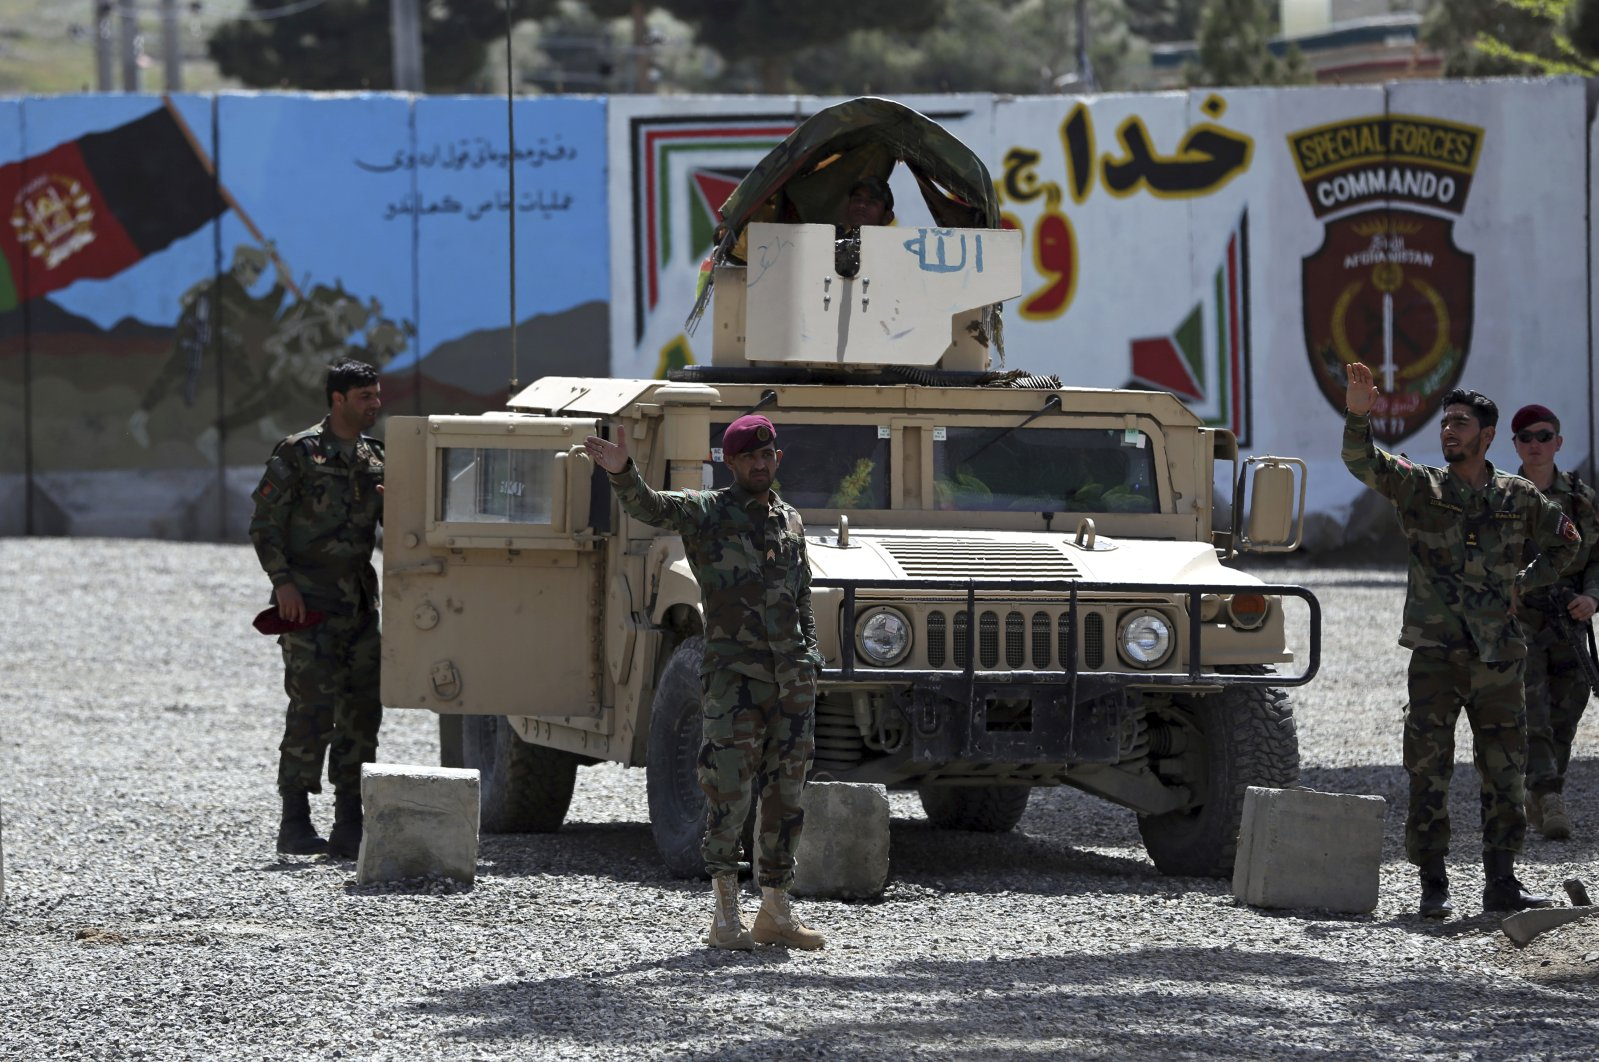 Afghan special forces stand guard near the site of a suicide bomber attack on the outskirts of Kabul, Afghanistan, Wednesday, April 29, 2020. (AP Photo)